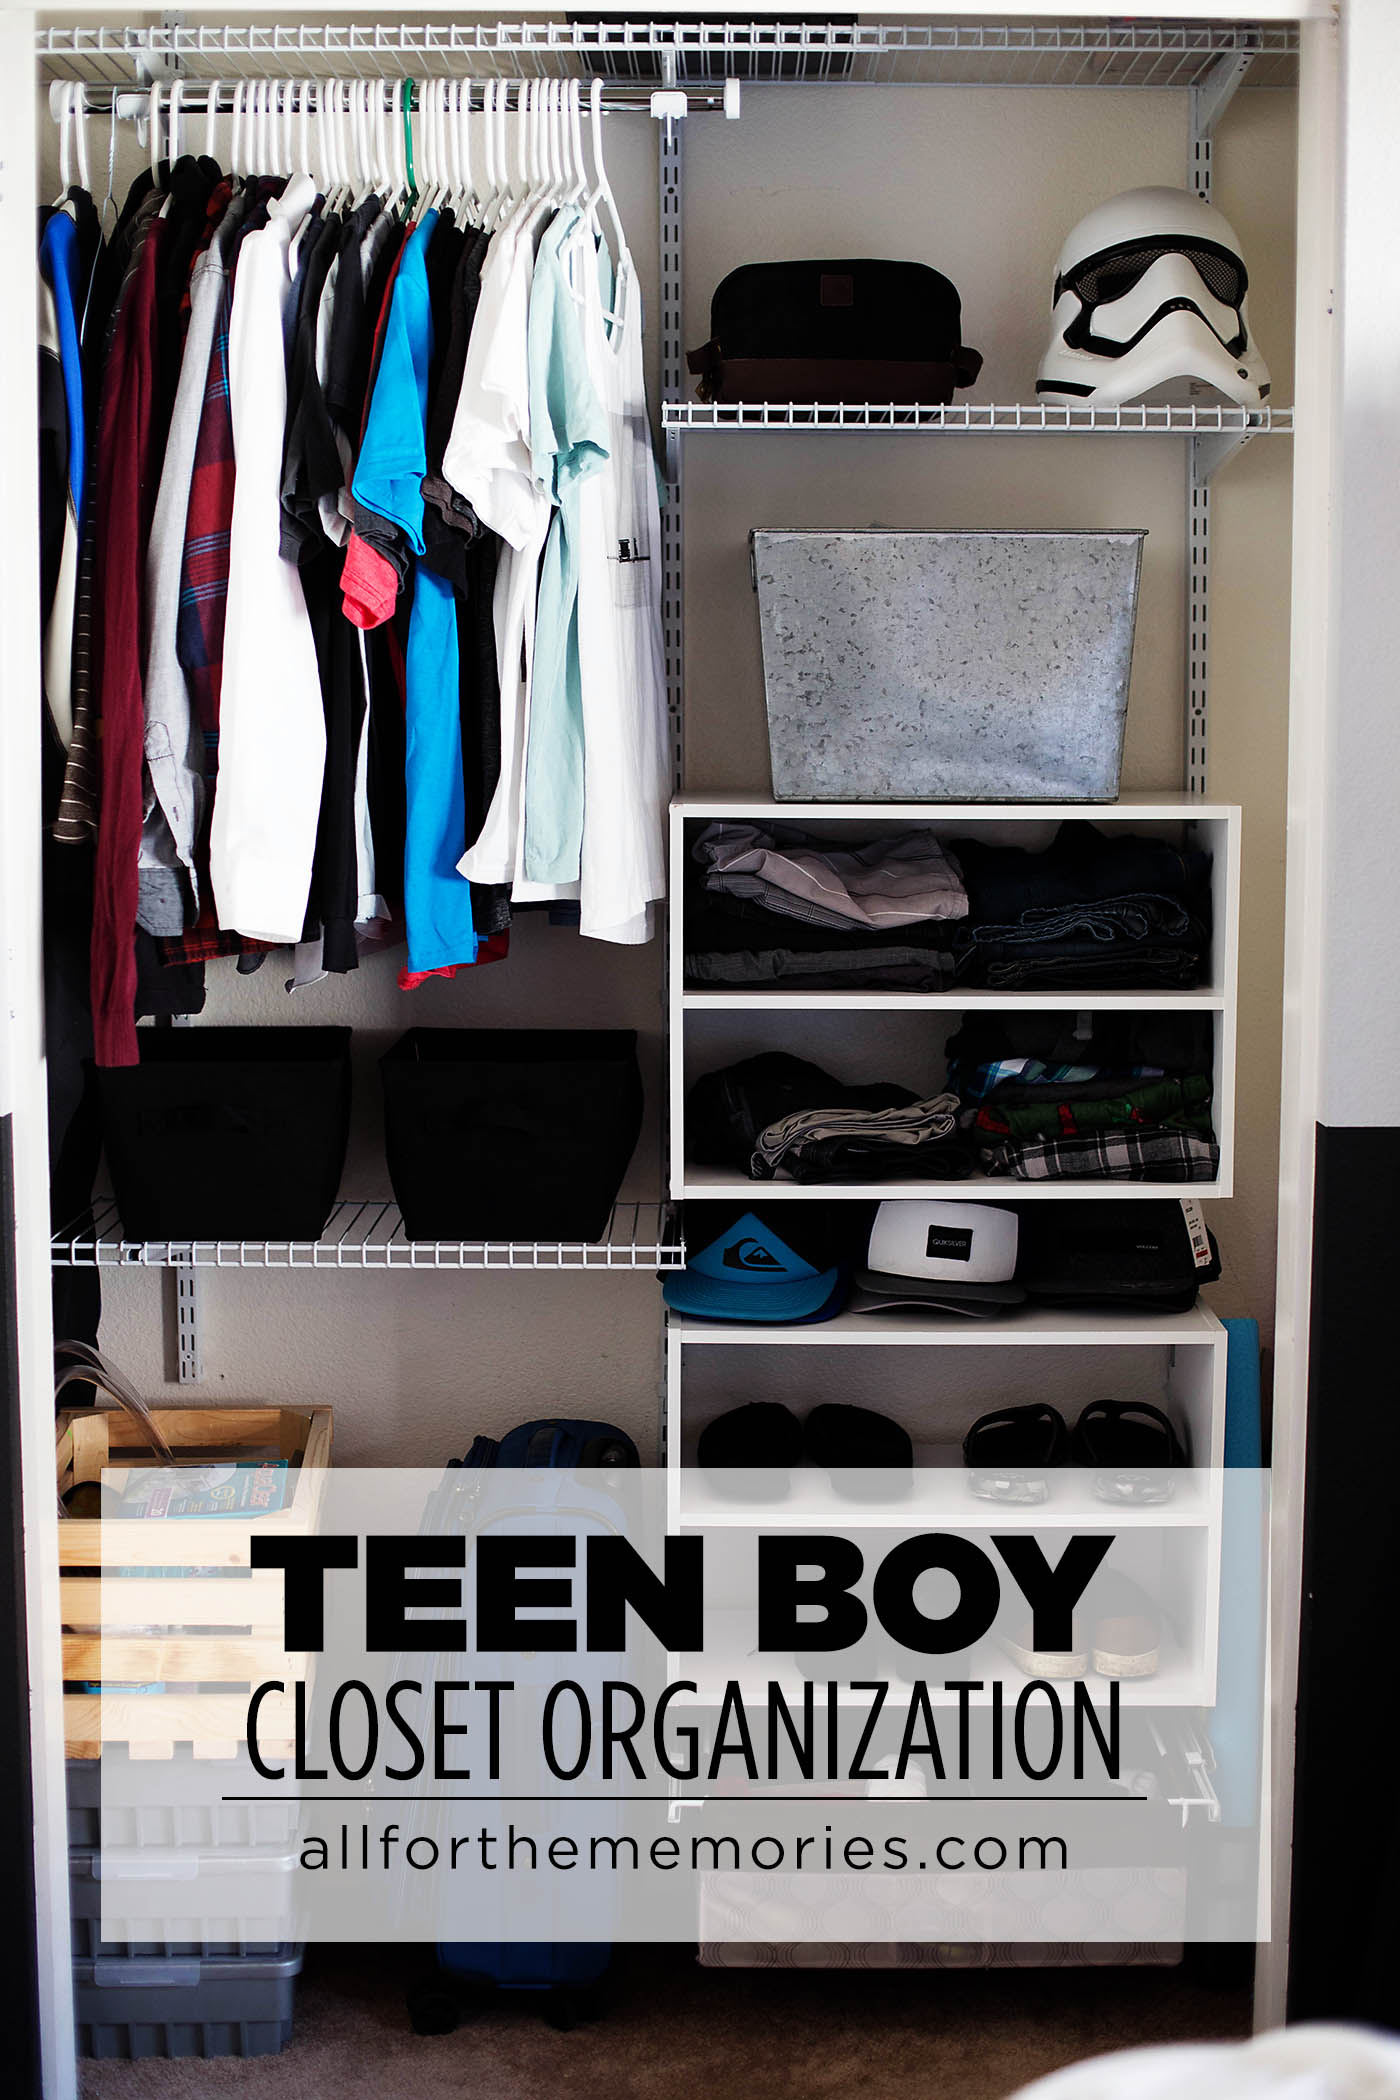 wardrobe room of on budget teenage by images a your bush contemporary teen girl teens ideas tyler strongandbeautiful for sattastuart image blog build closet bedroom lennox april girly decorating